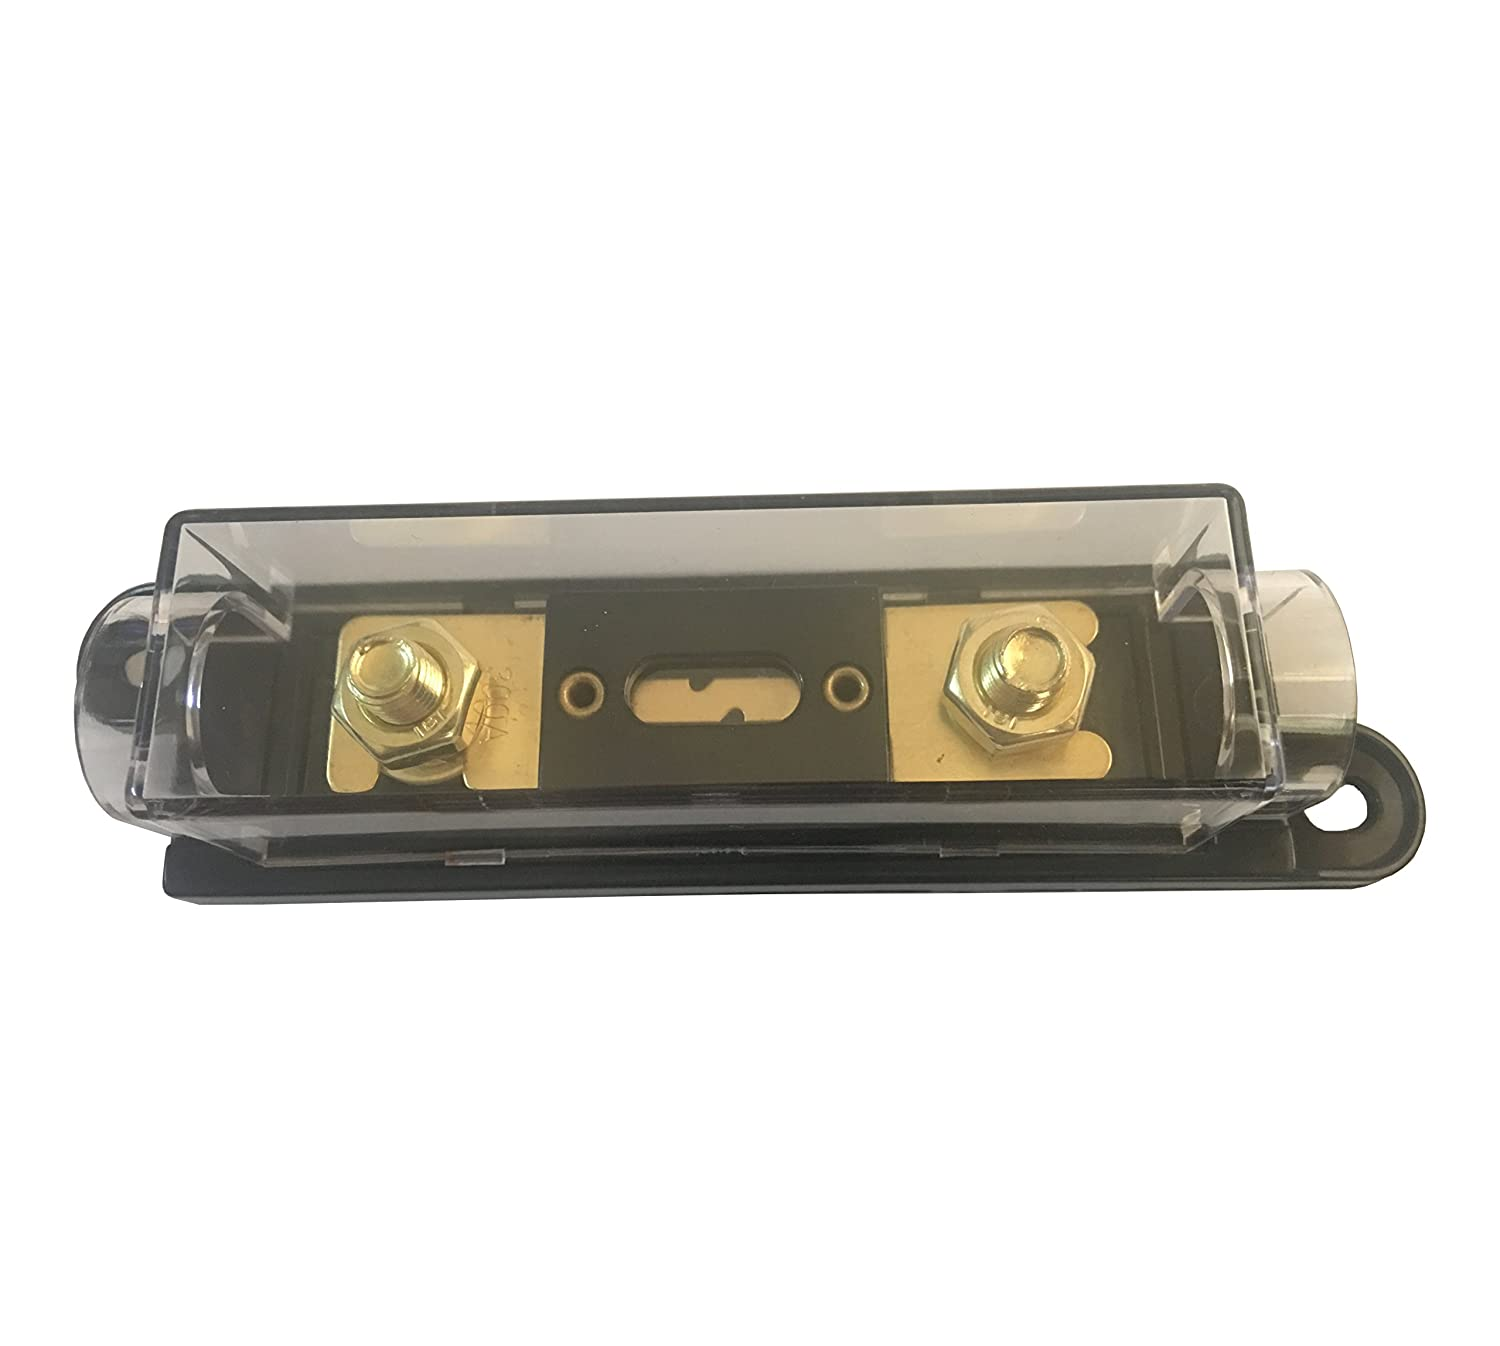 Kolacen Anl Gold Plated Fuse 150 Amp Holder Black 1 Pack Box